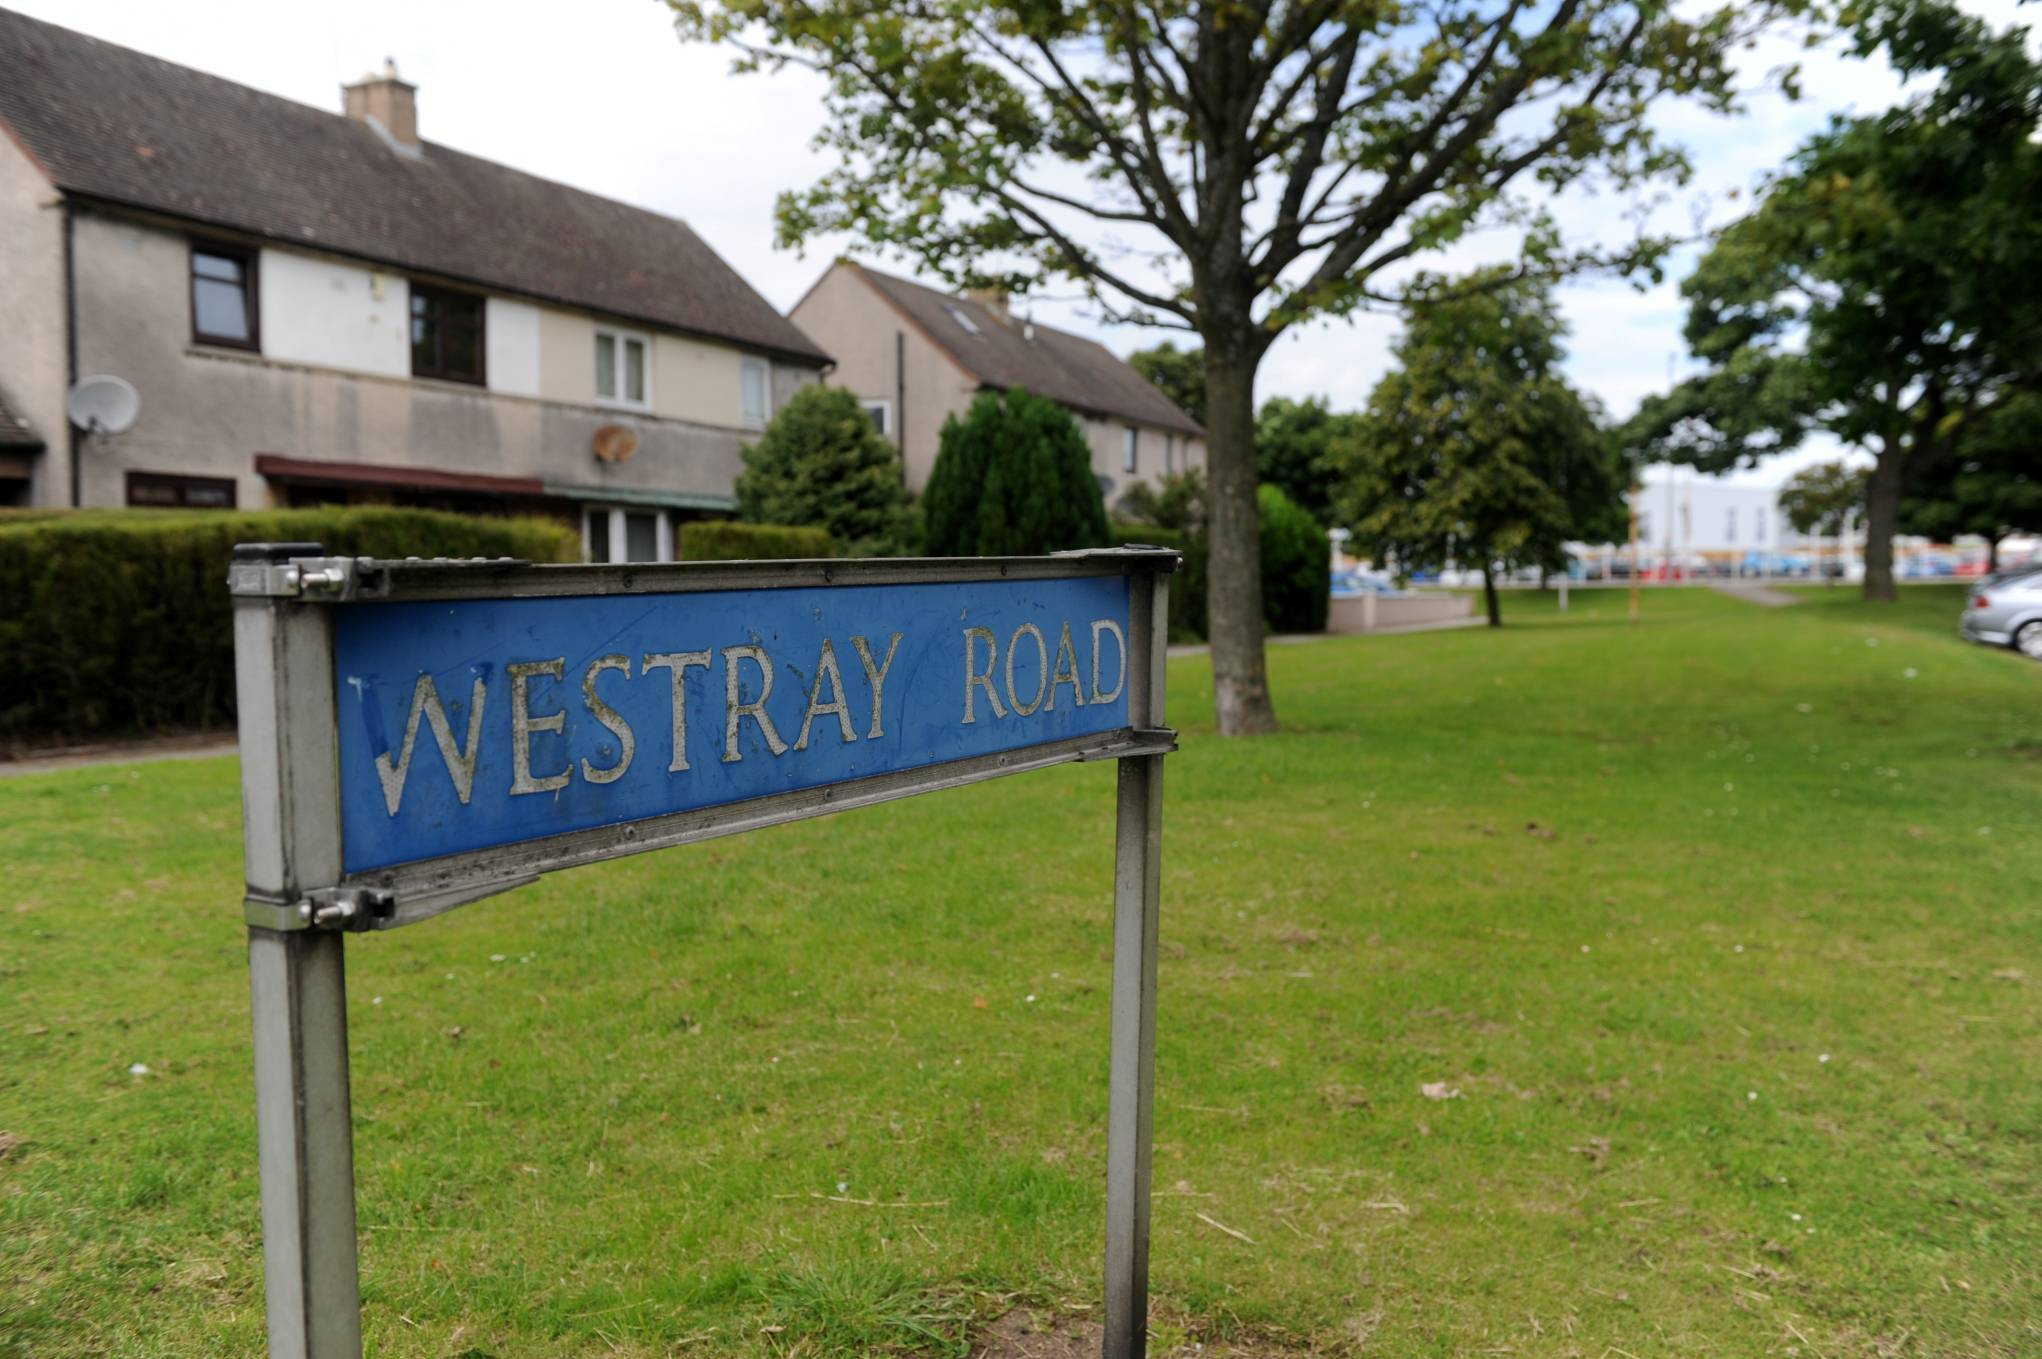 The alleged incident happened on Westray Road.